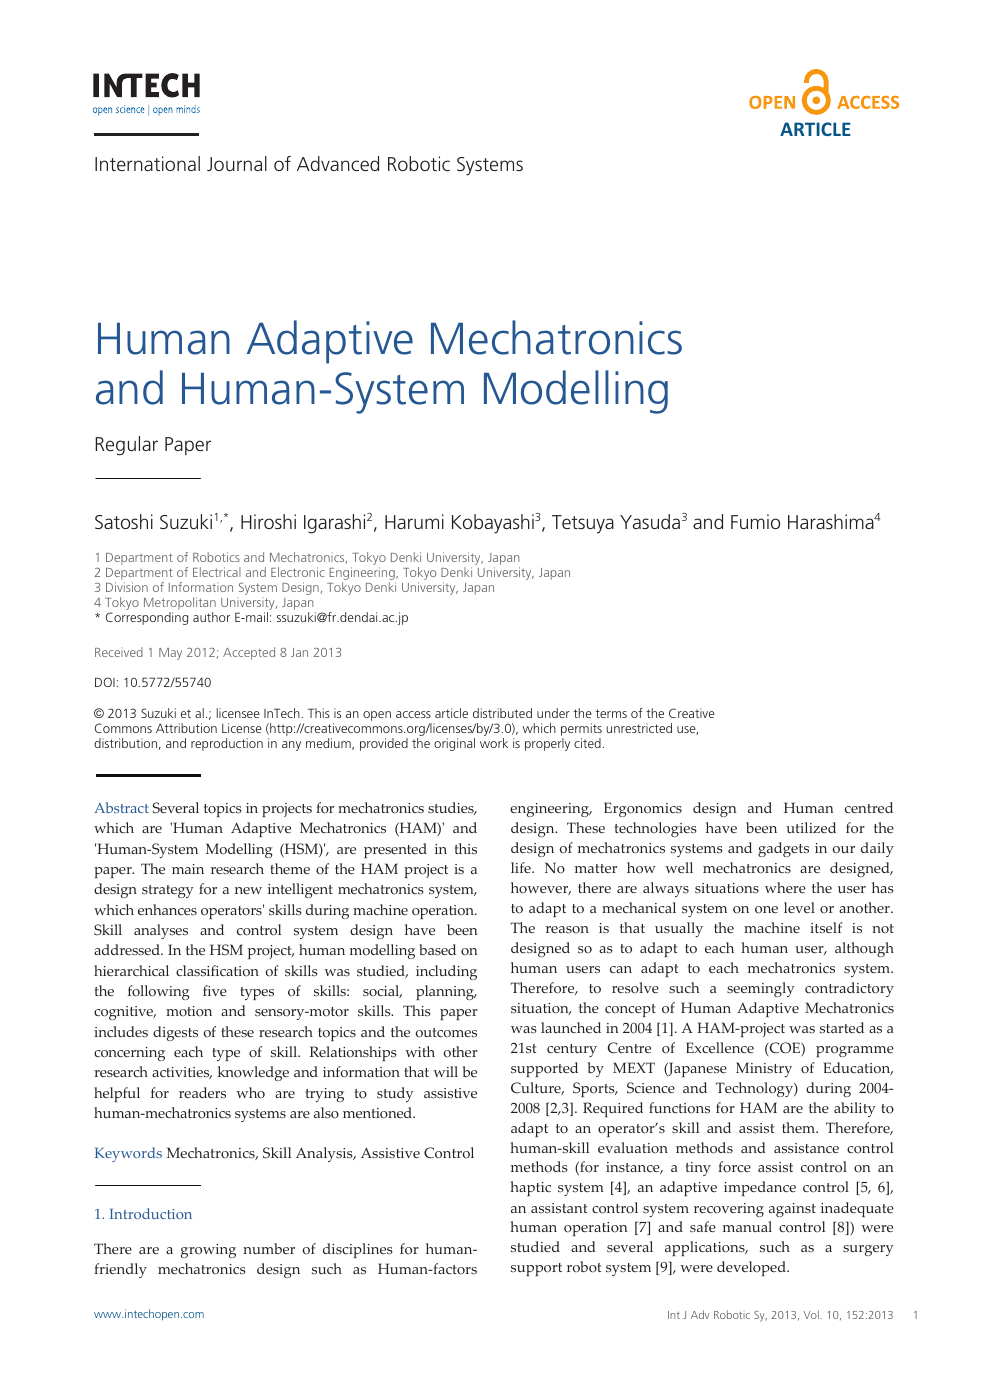 Human Adaptive Mechatronics And Human System Modelling Topic Of Research Paper In Psychology Download Scholarly Article Pdf And Read For Free On Cyberleninka Open Science Hub